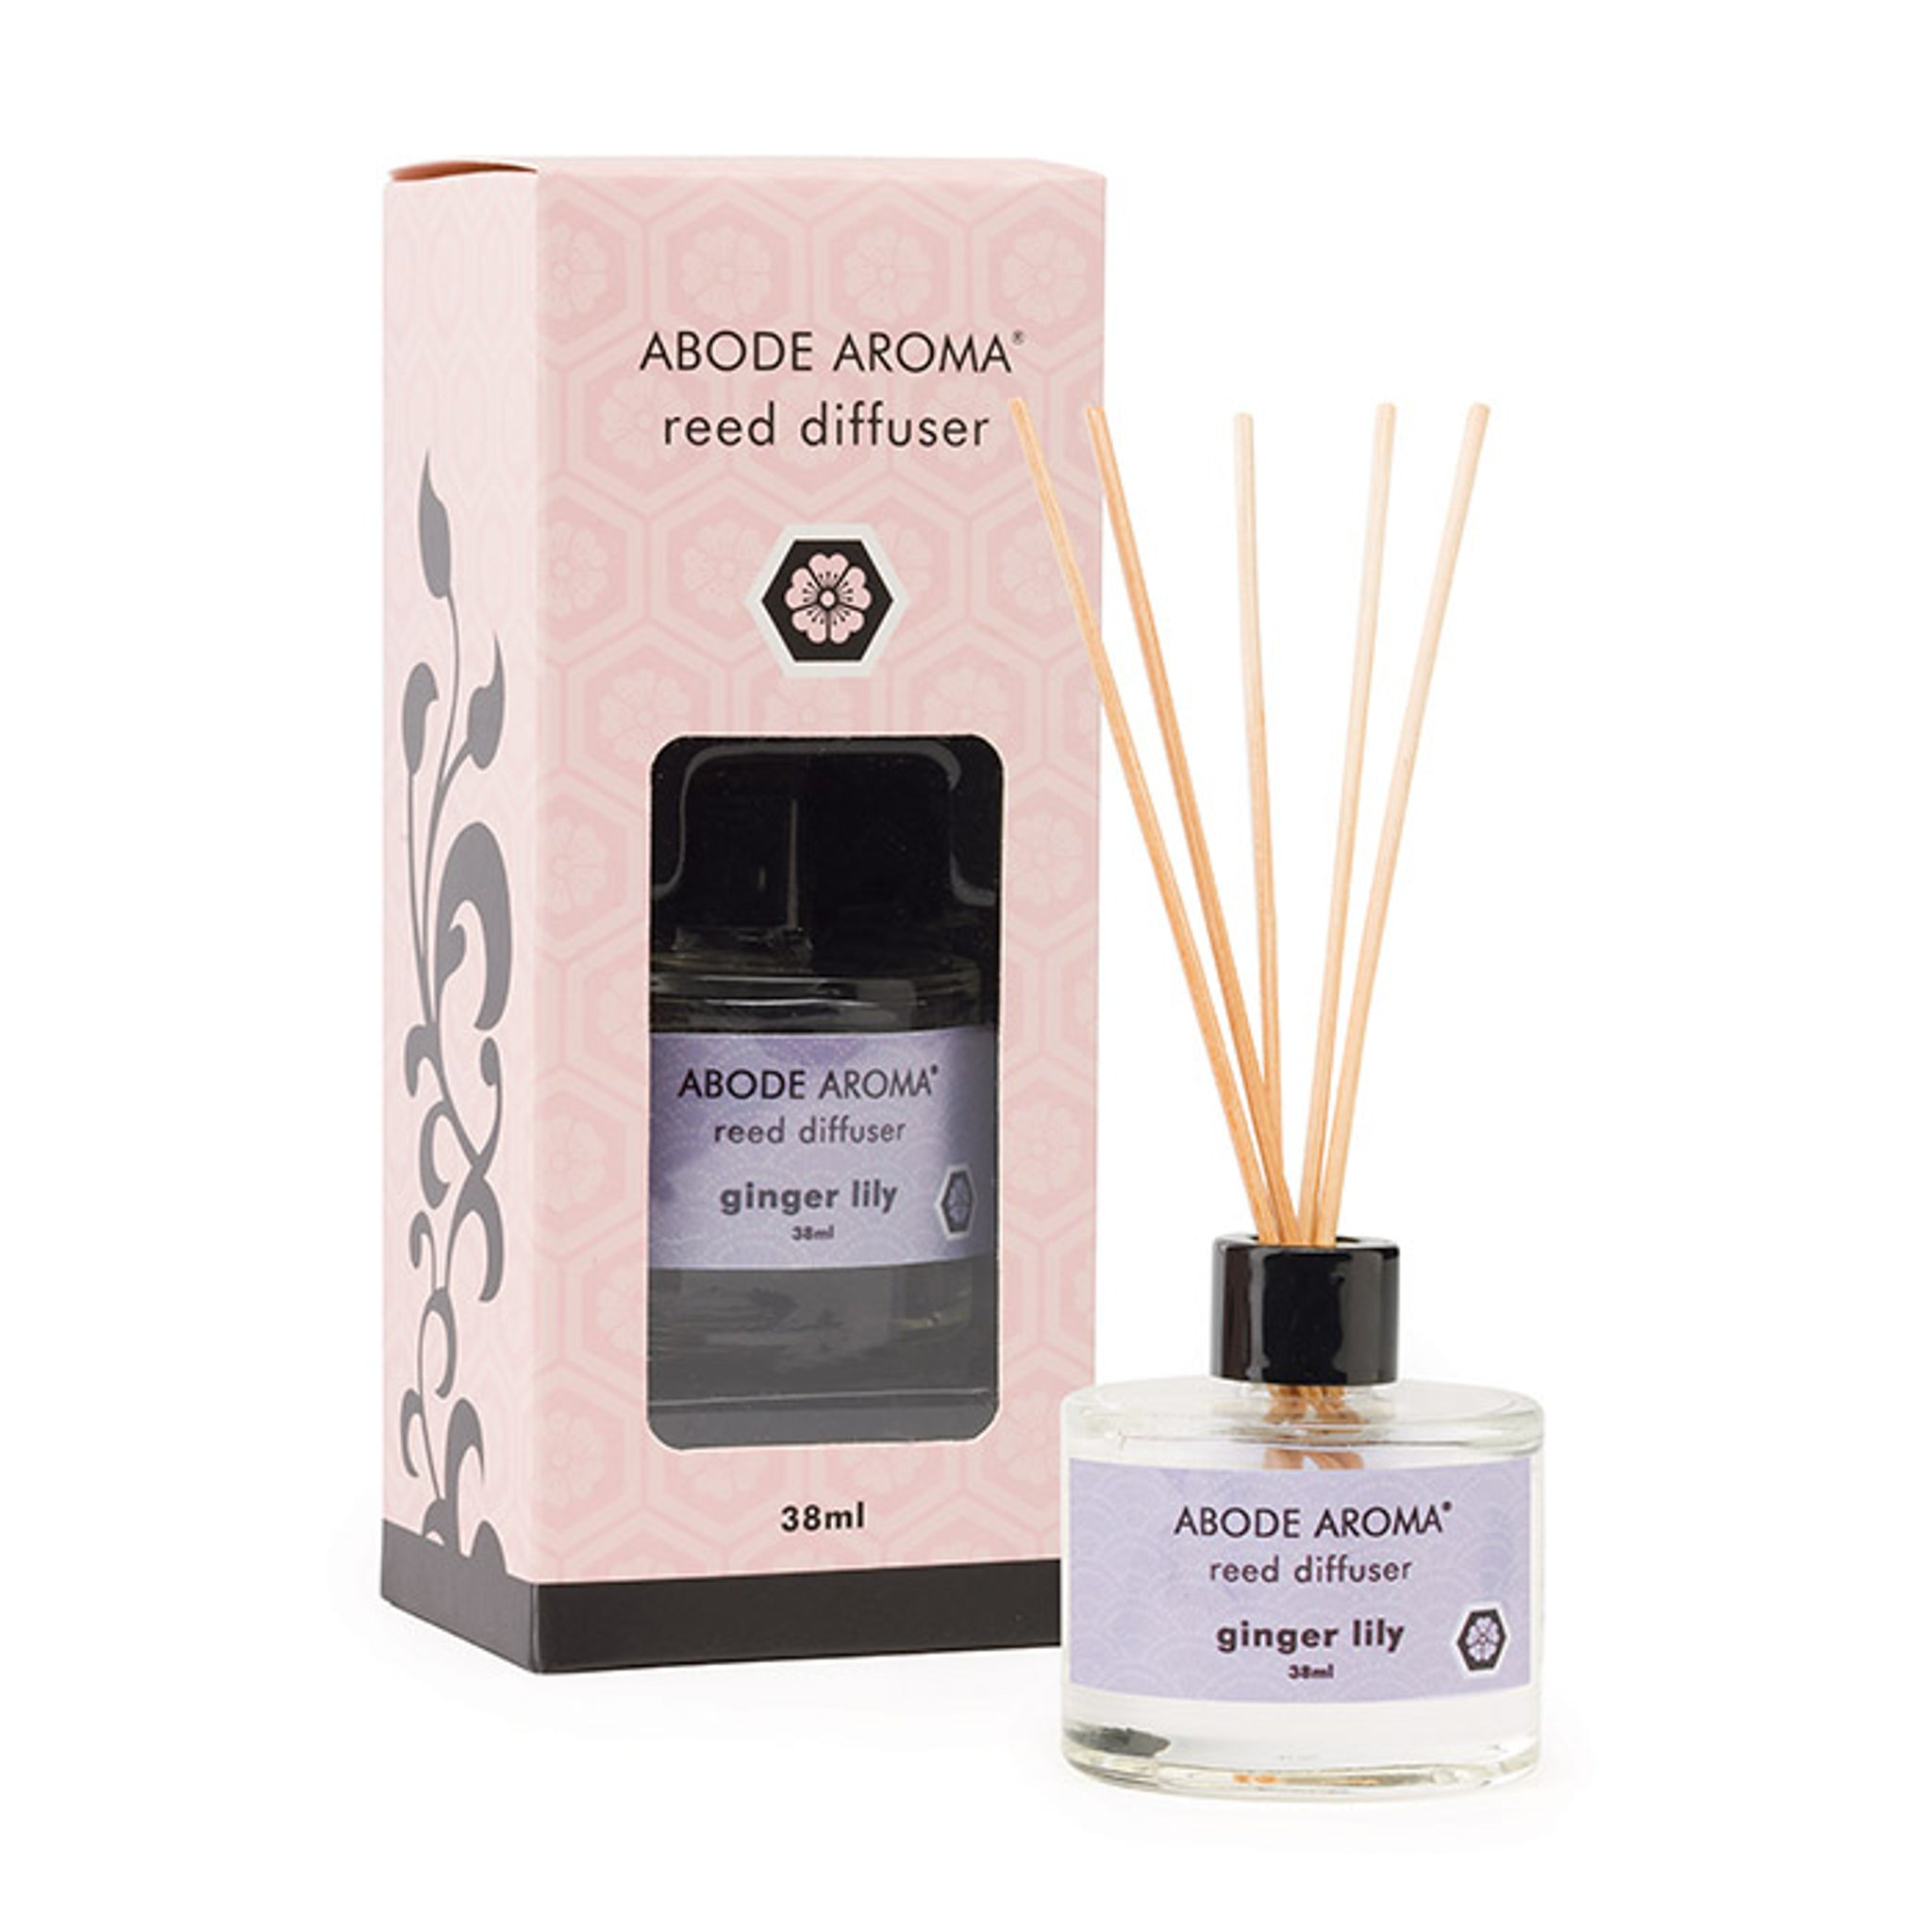 Abode Aroma Dimi Diffuser Ginger Lily